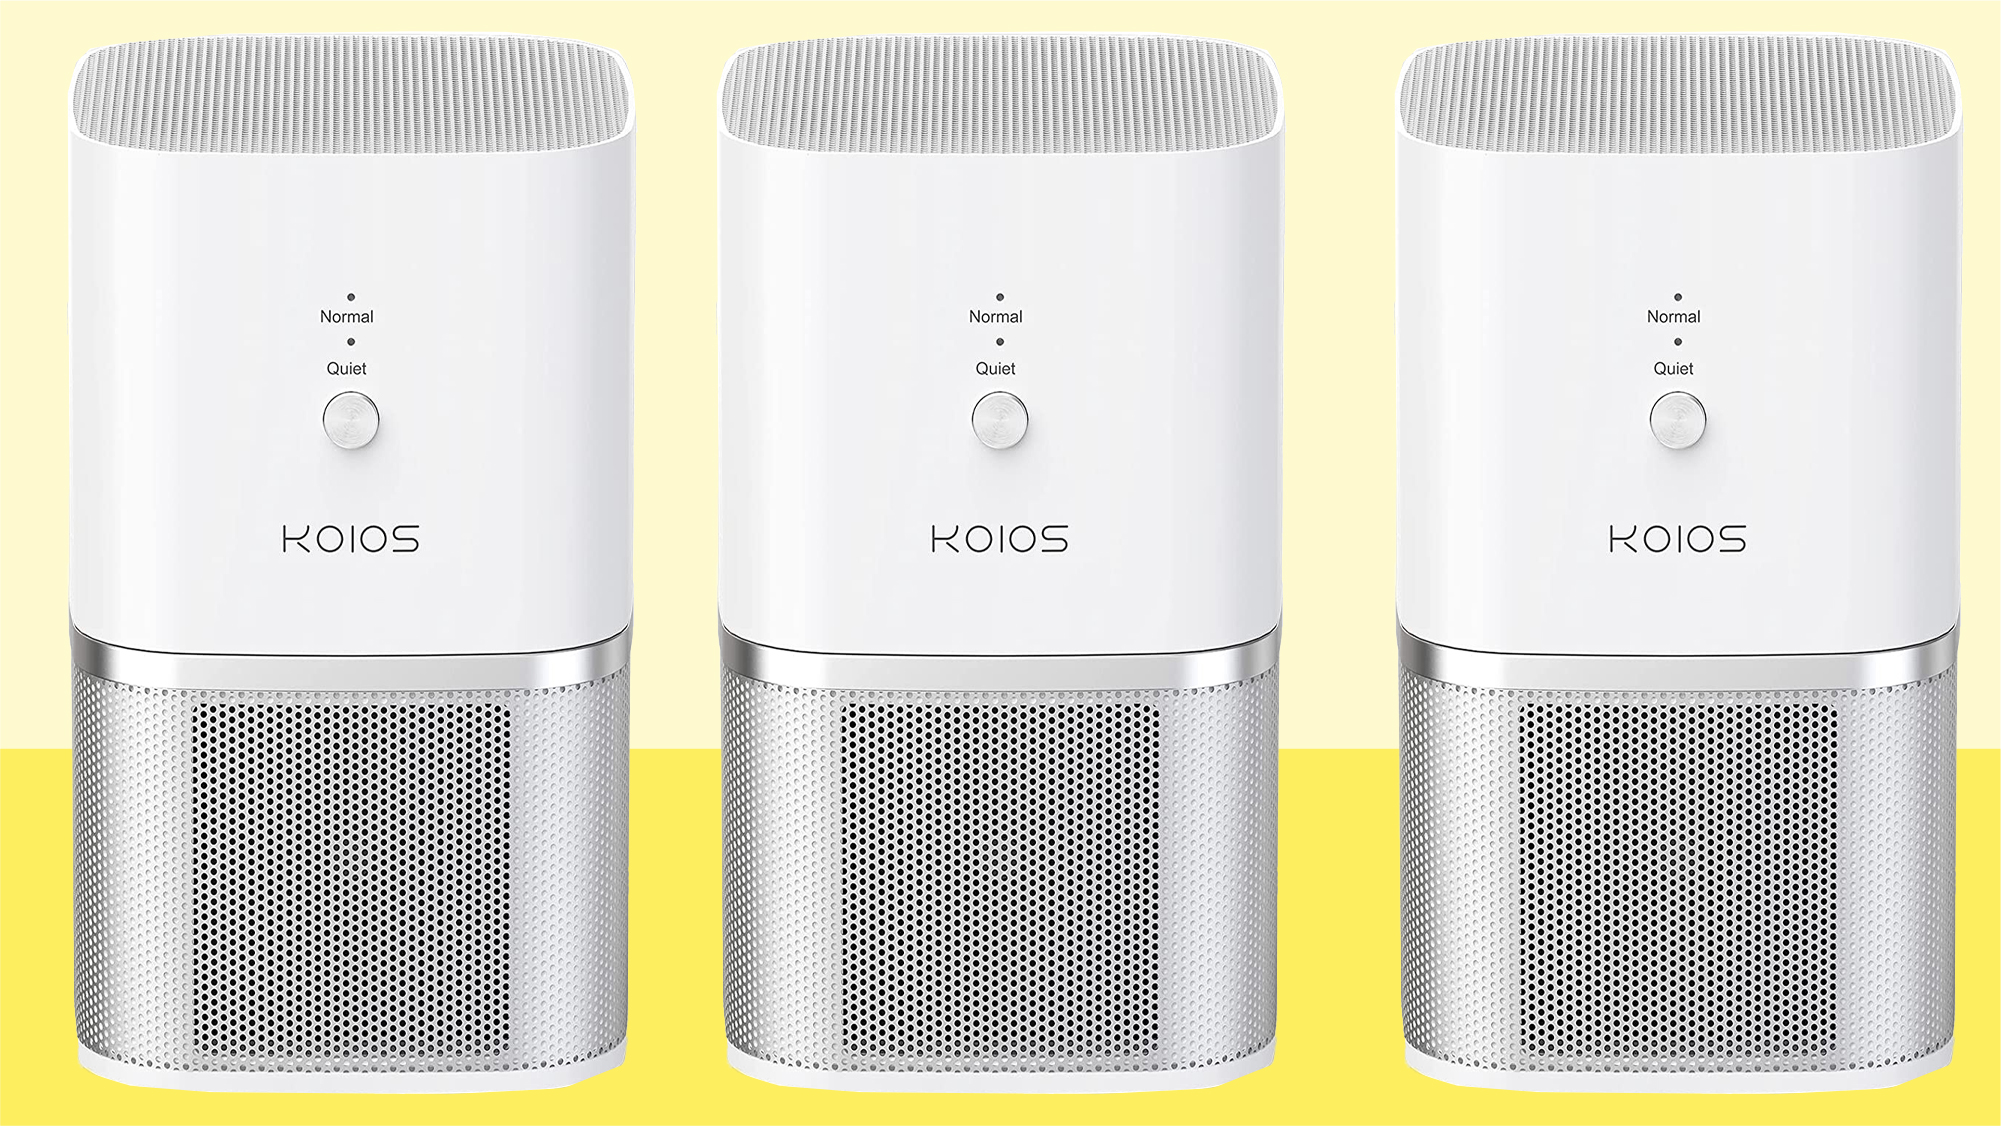 KOIOS Air Purifier, Small Air Purifiers with True HEPA Filter